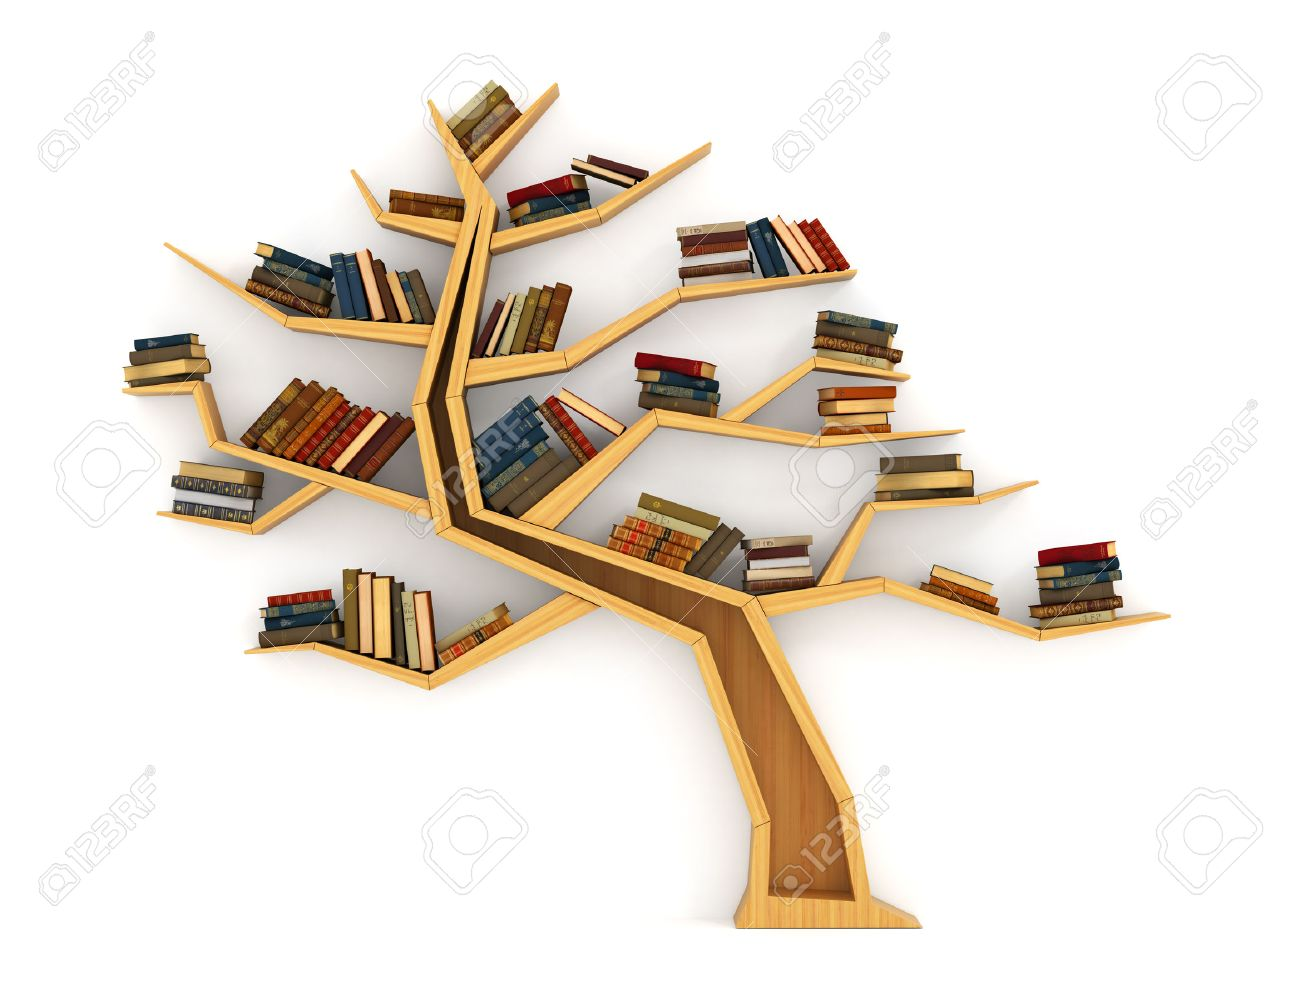 Wooden Bookshelf In Form Of Tree Science About Nature The